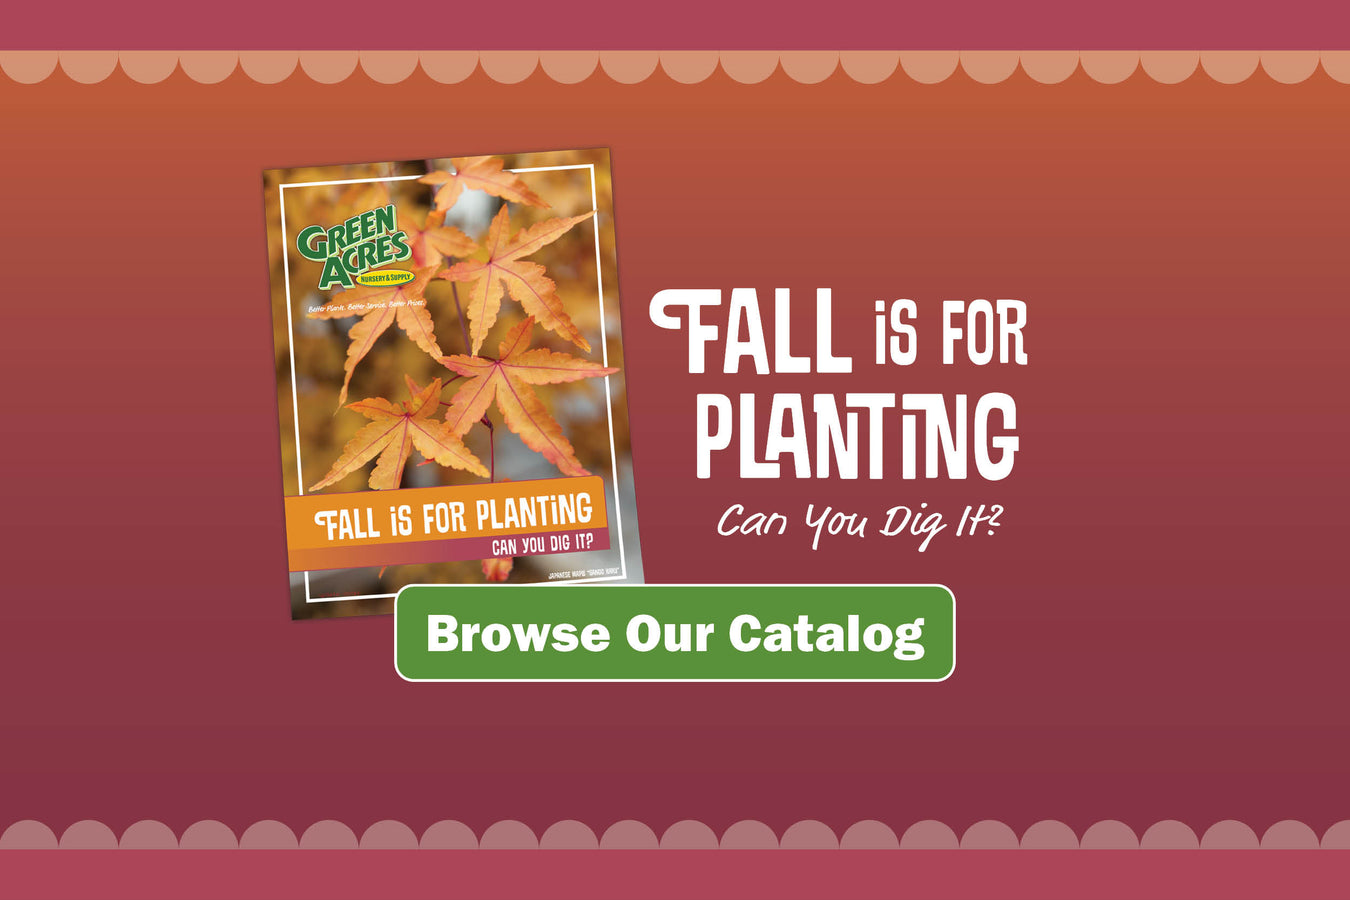 Catalog - Fall is For Planting. Can You Dig It?